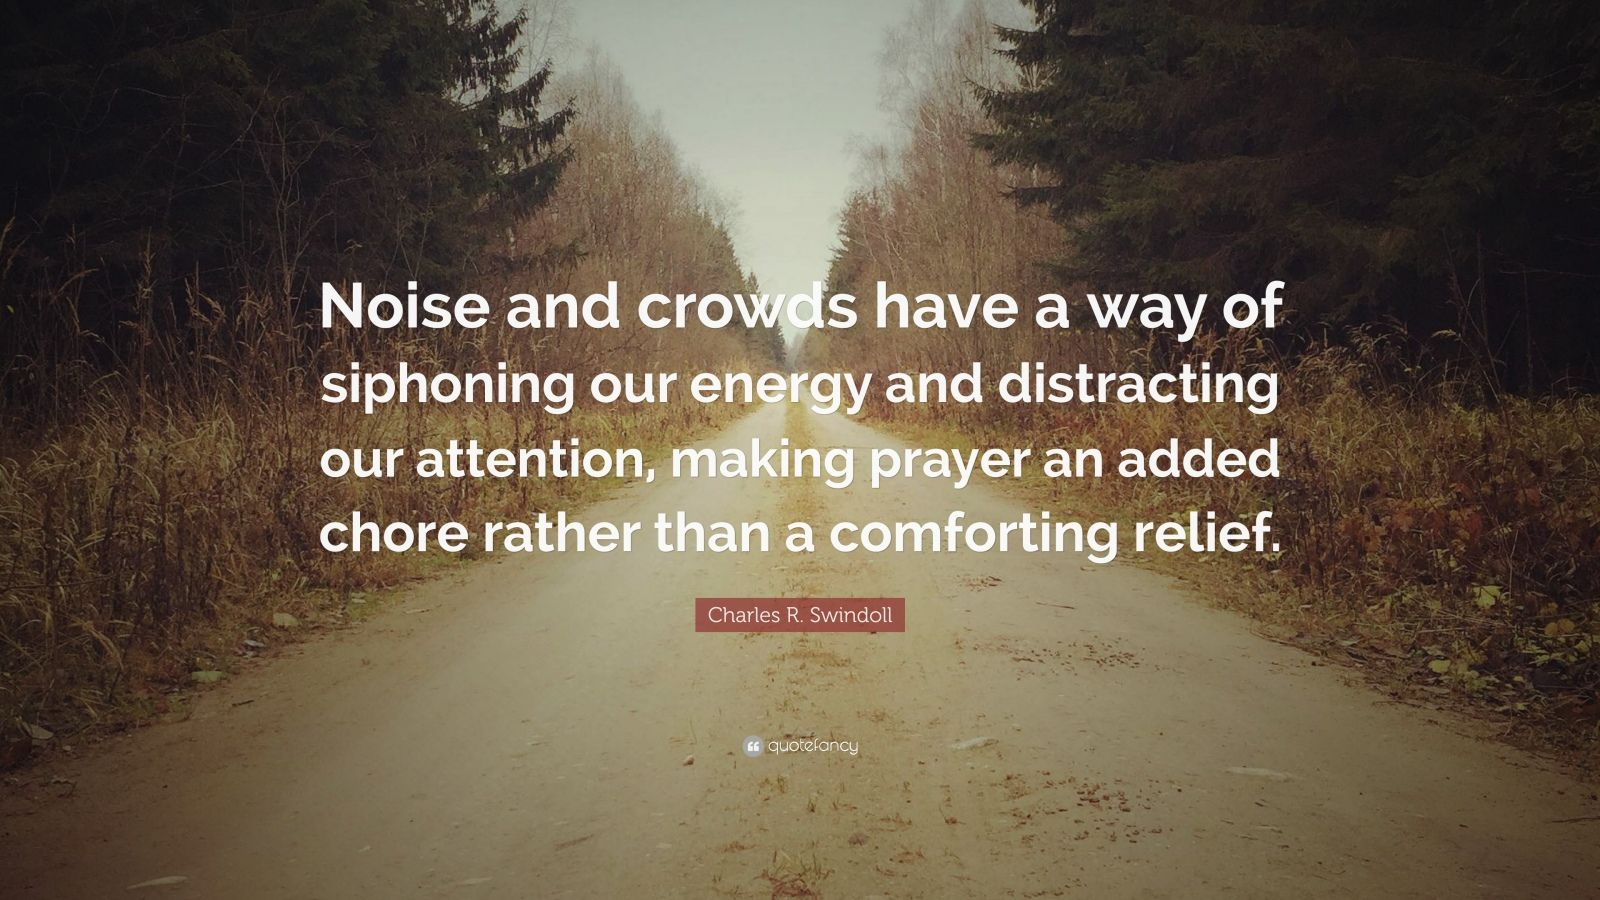 "Charles R. Swindoll Quote: ""Noise and crowds have a way of siphoning our energy and distracting our attention, making prayer an added chore rather than a comforting relief."""